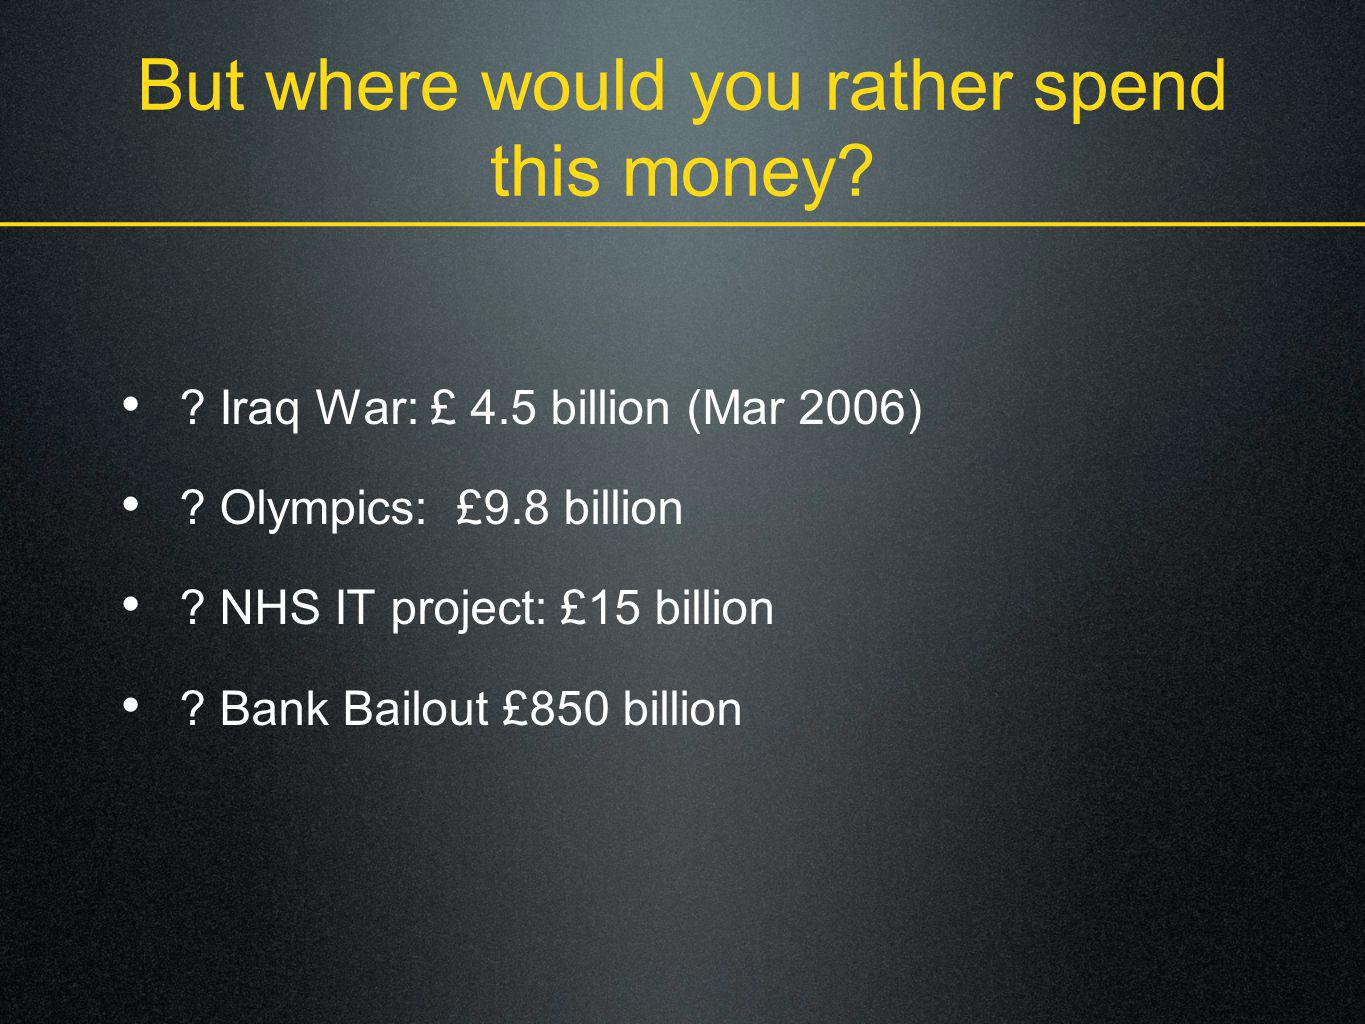 But where would you rather spend this money